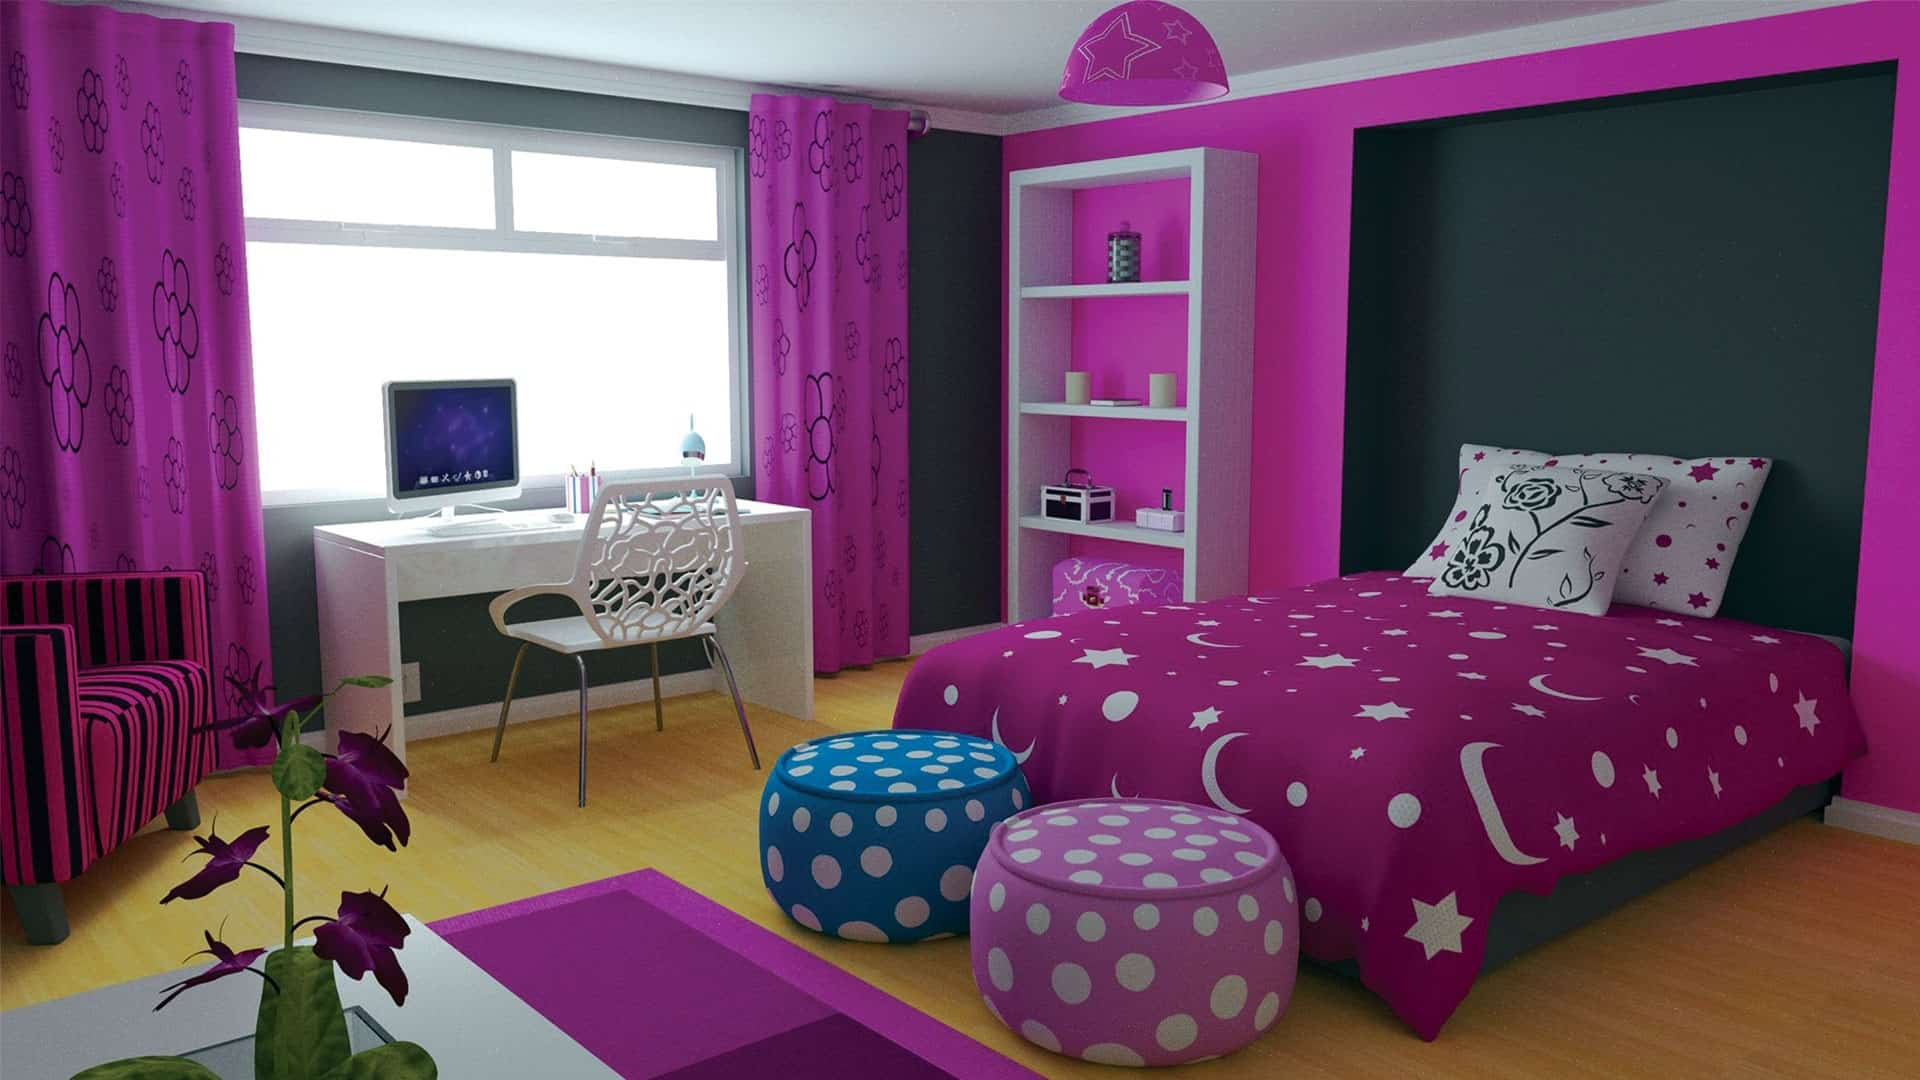 Home decor trends 2017 purple teen room for Girls room decor